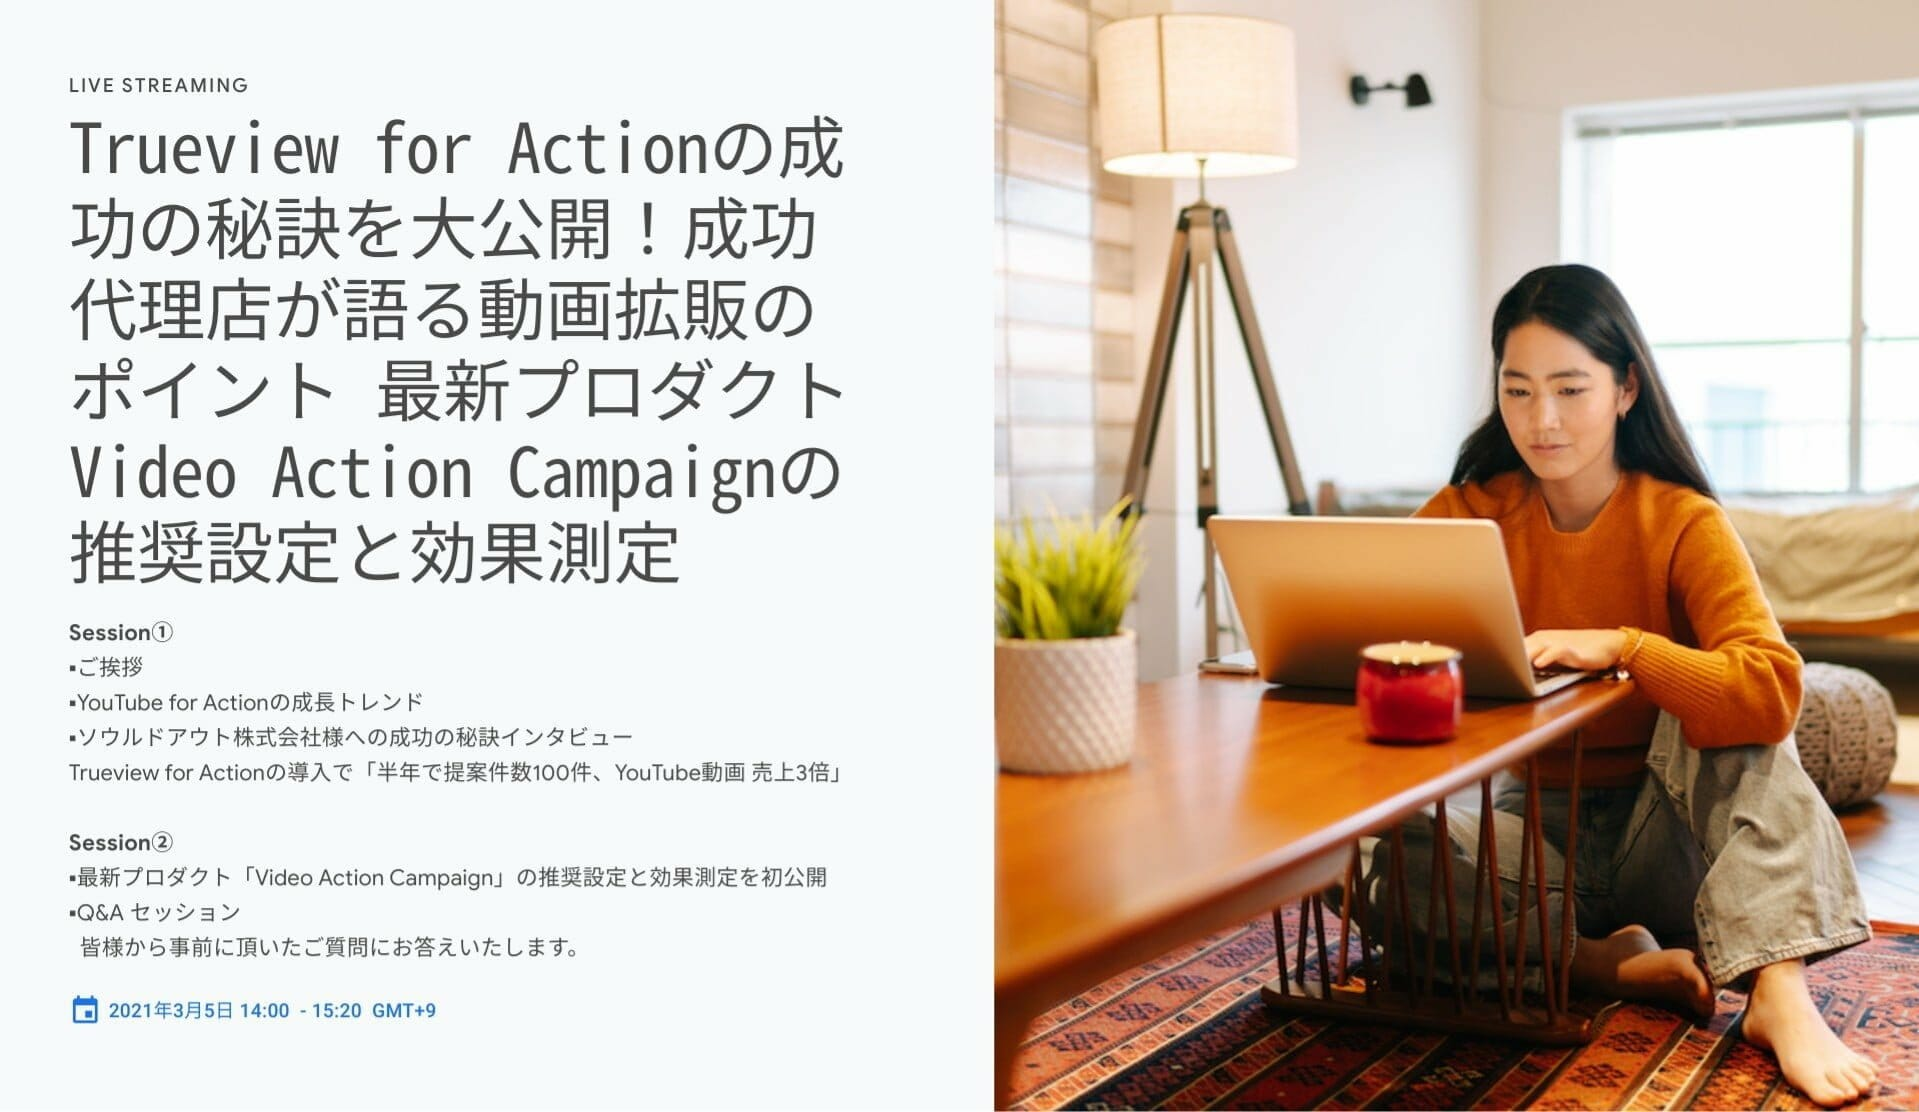 [Google 広告] Trueview for Actionの成功の秘訣を大公開!成功代理店が語る動画拡販のポイント 最新プロダクトVideo Action Campaignの推奨設定と効果測定